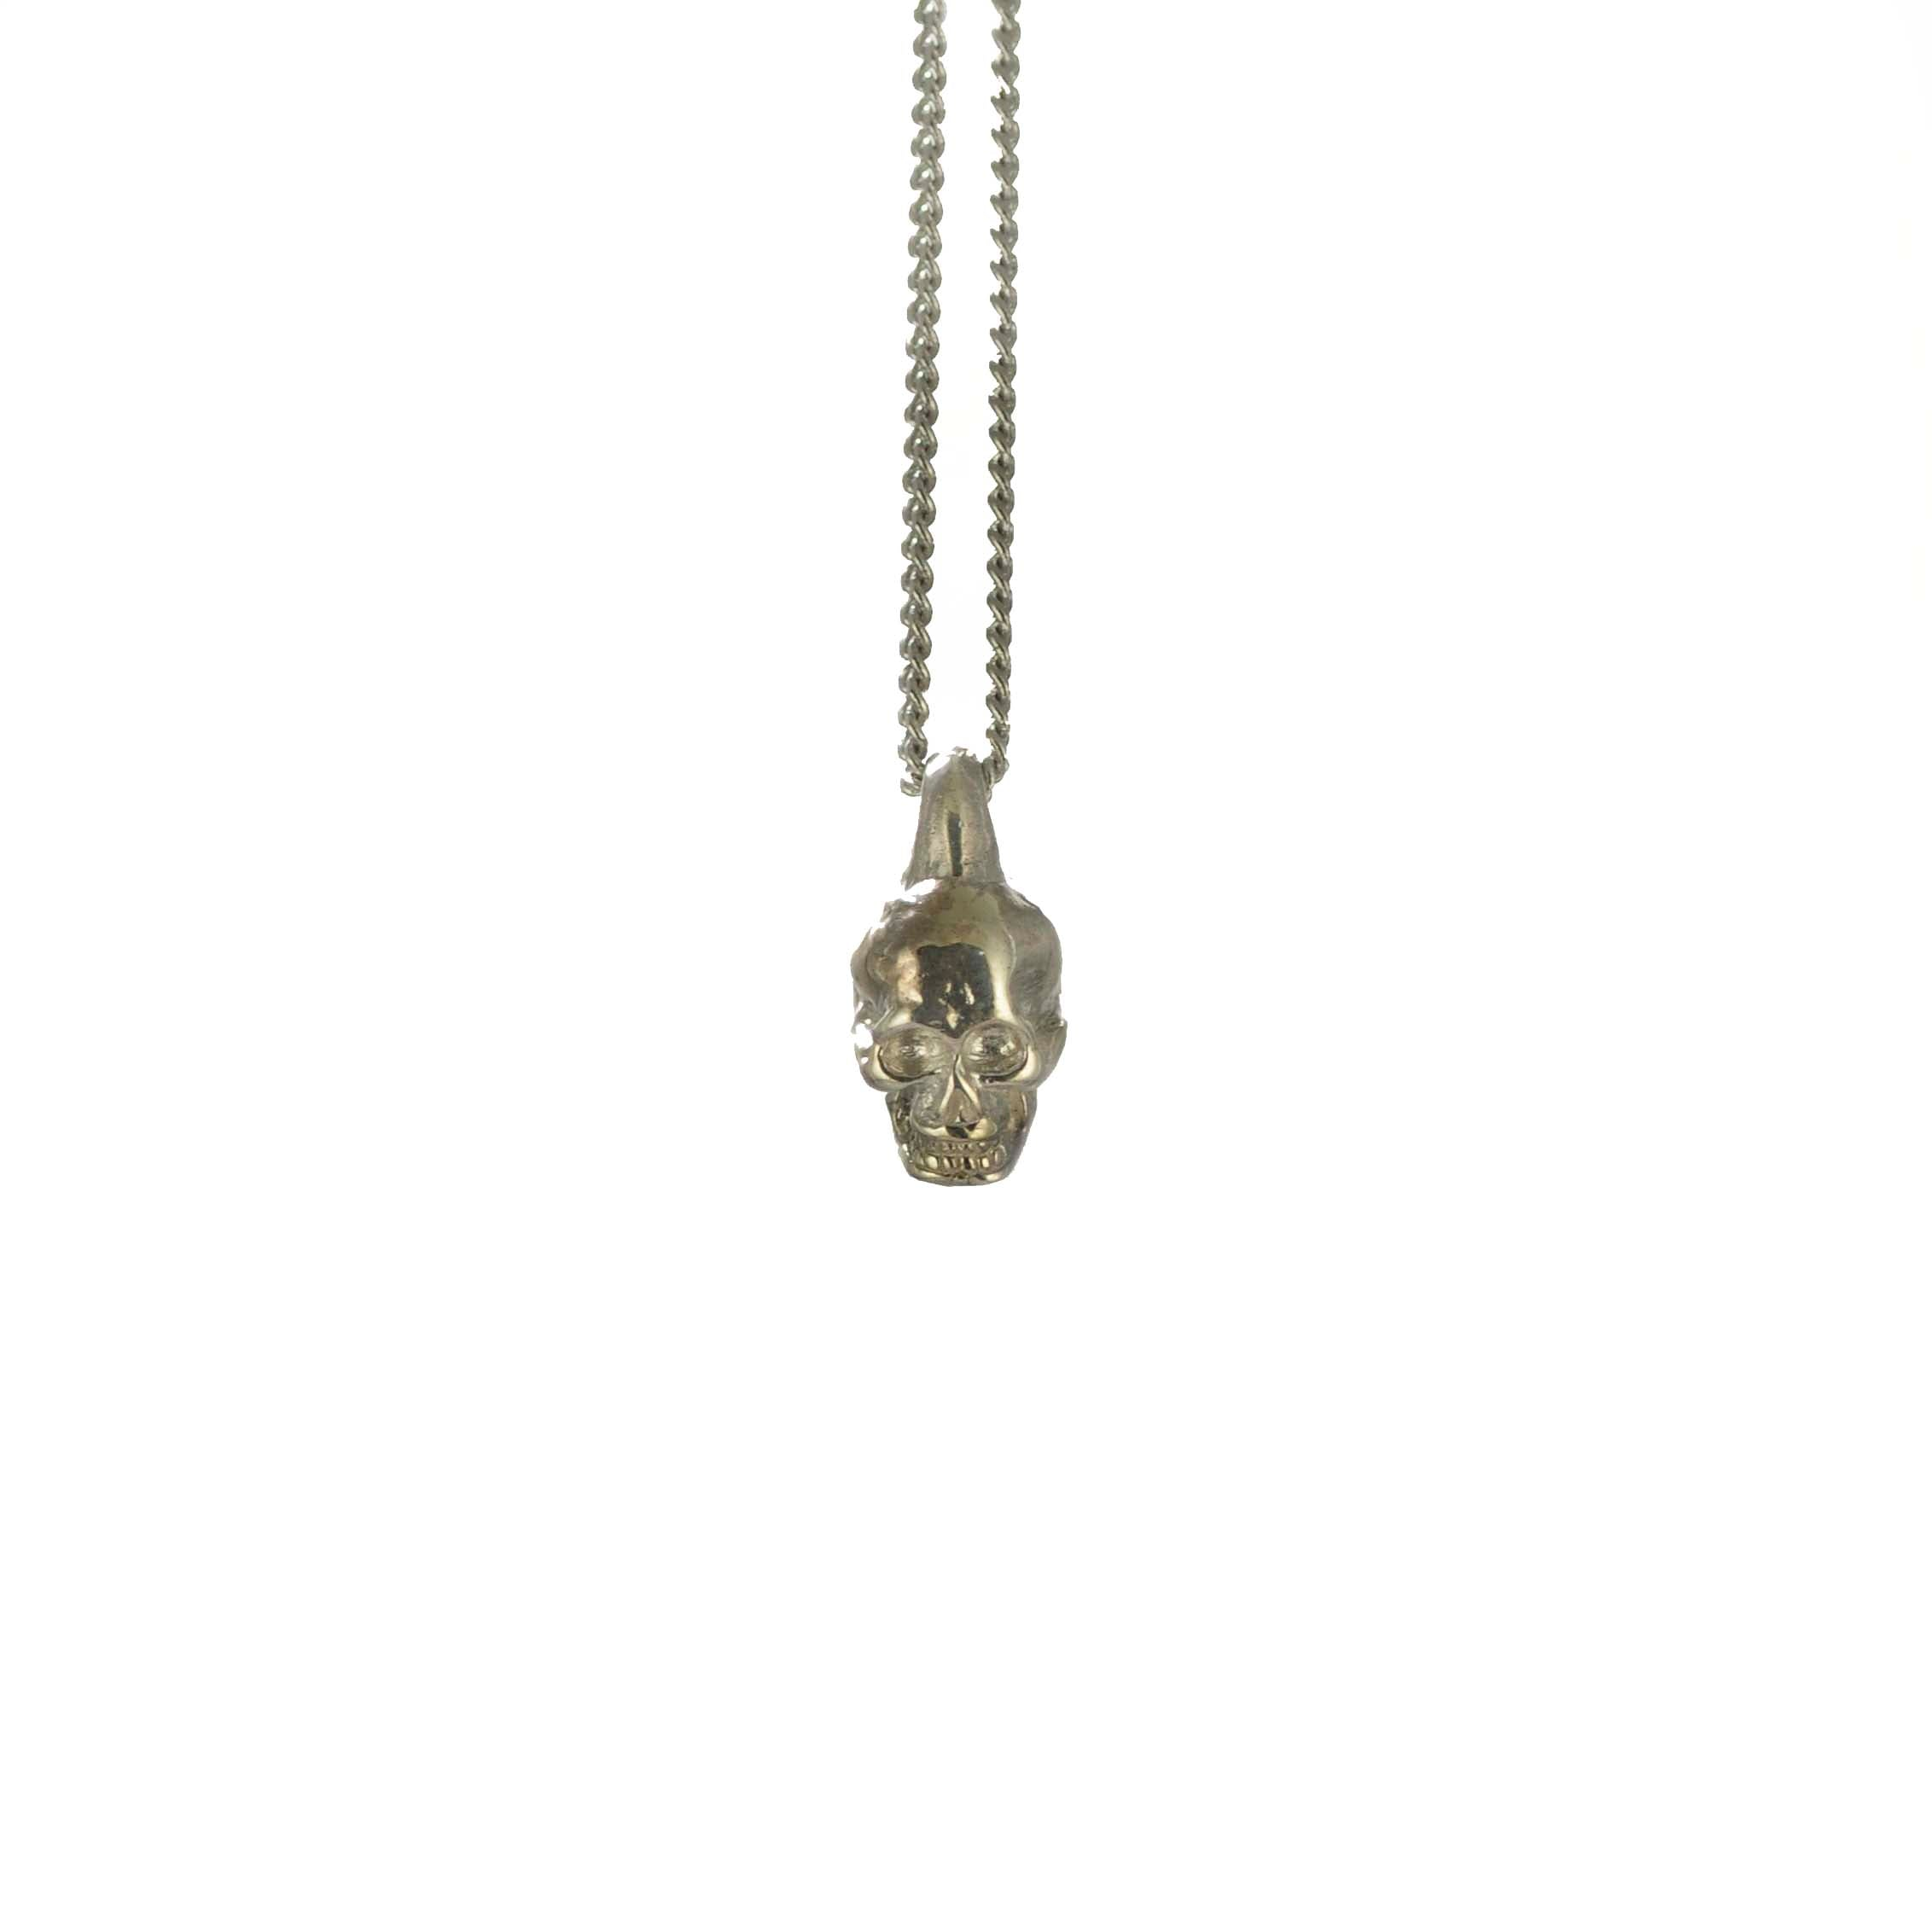 Diego Skull Necklace - Terry Schiefer